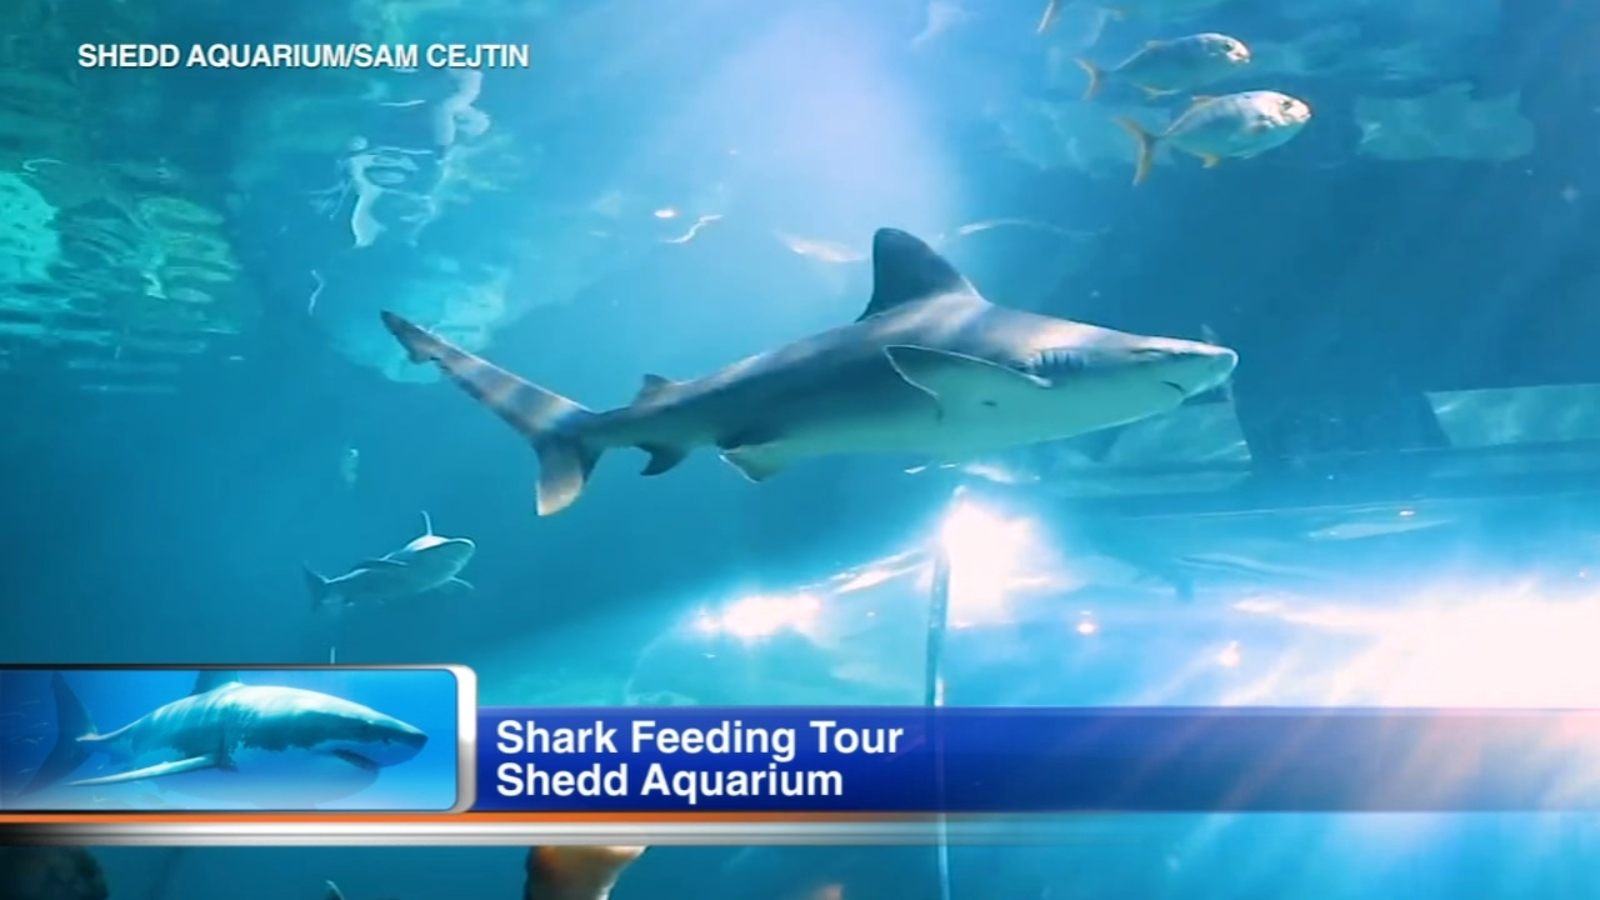 Escape the cold and feed sharks at Shedd Aquarium's Shark ...